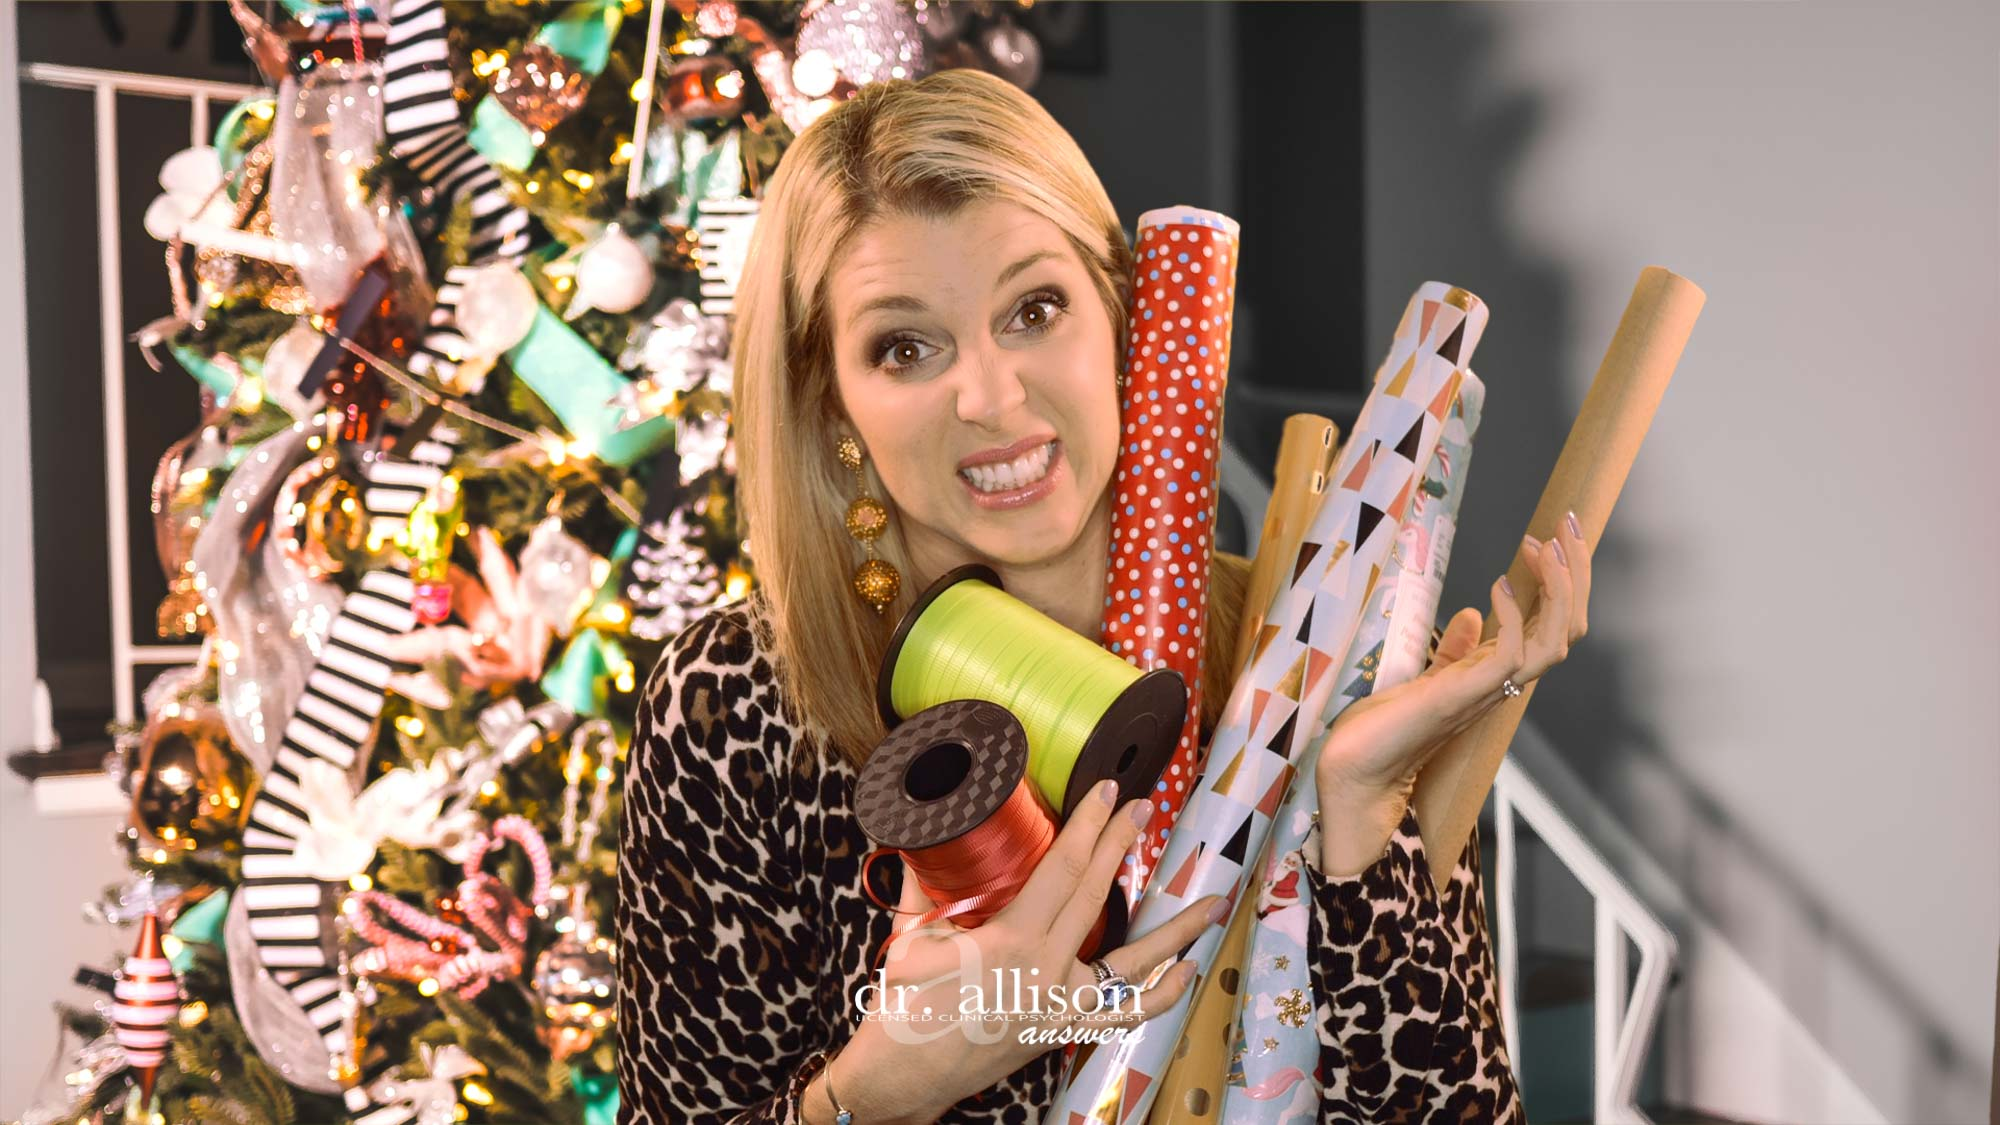 Take the Stress Out of Gift Giving via Dr. Allison Answers